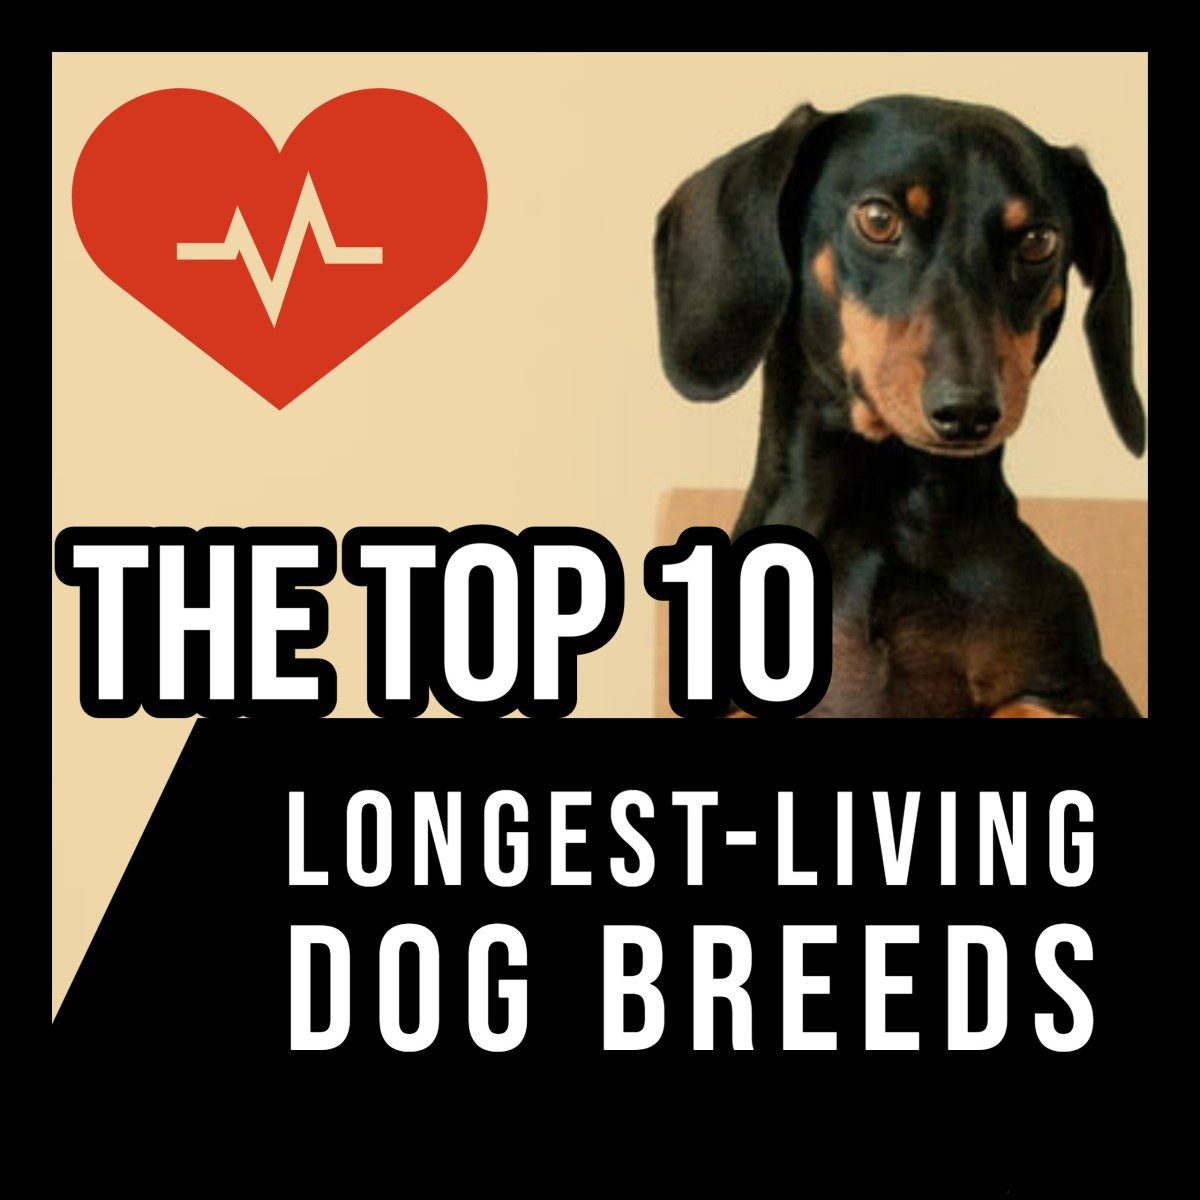 From the Australian Cattle Dog to the Chihuahua, this article examines 10 of the world's longest-living dog breeds.